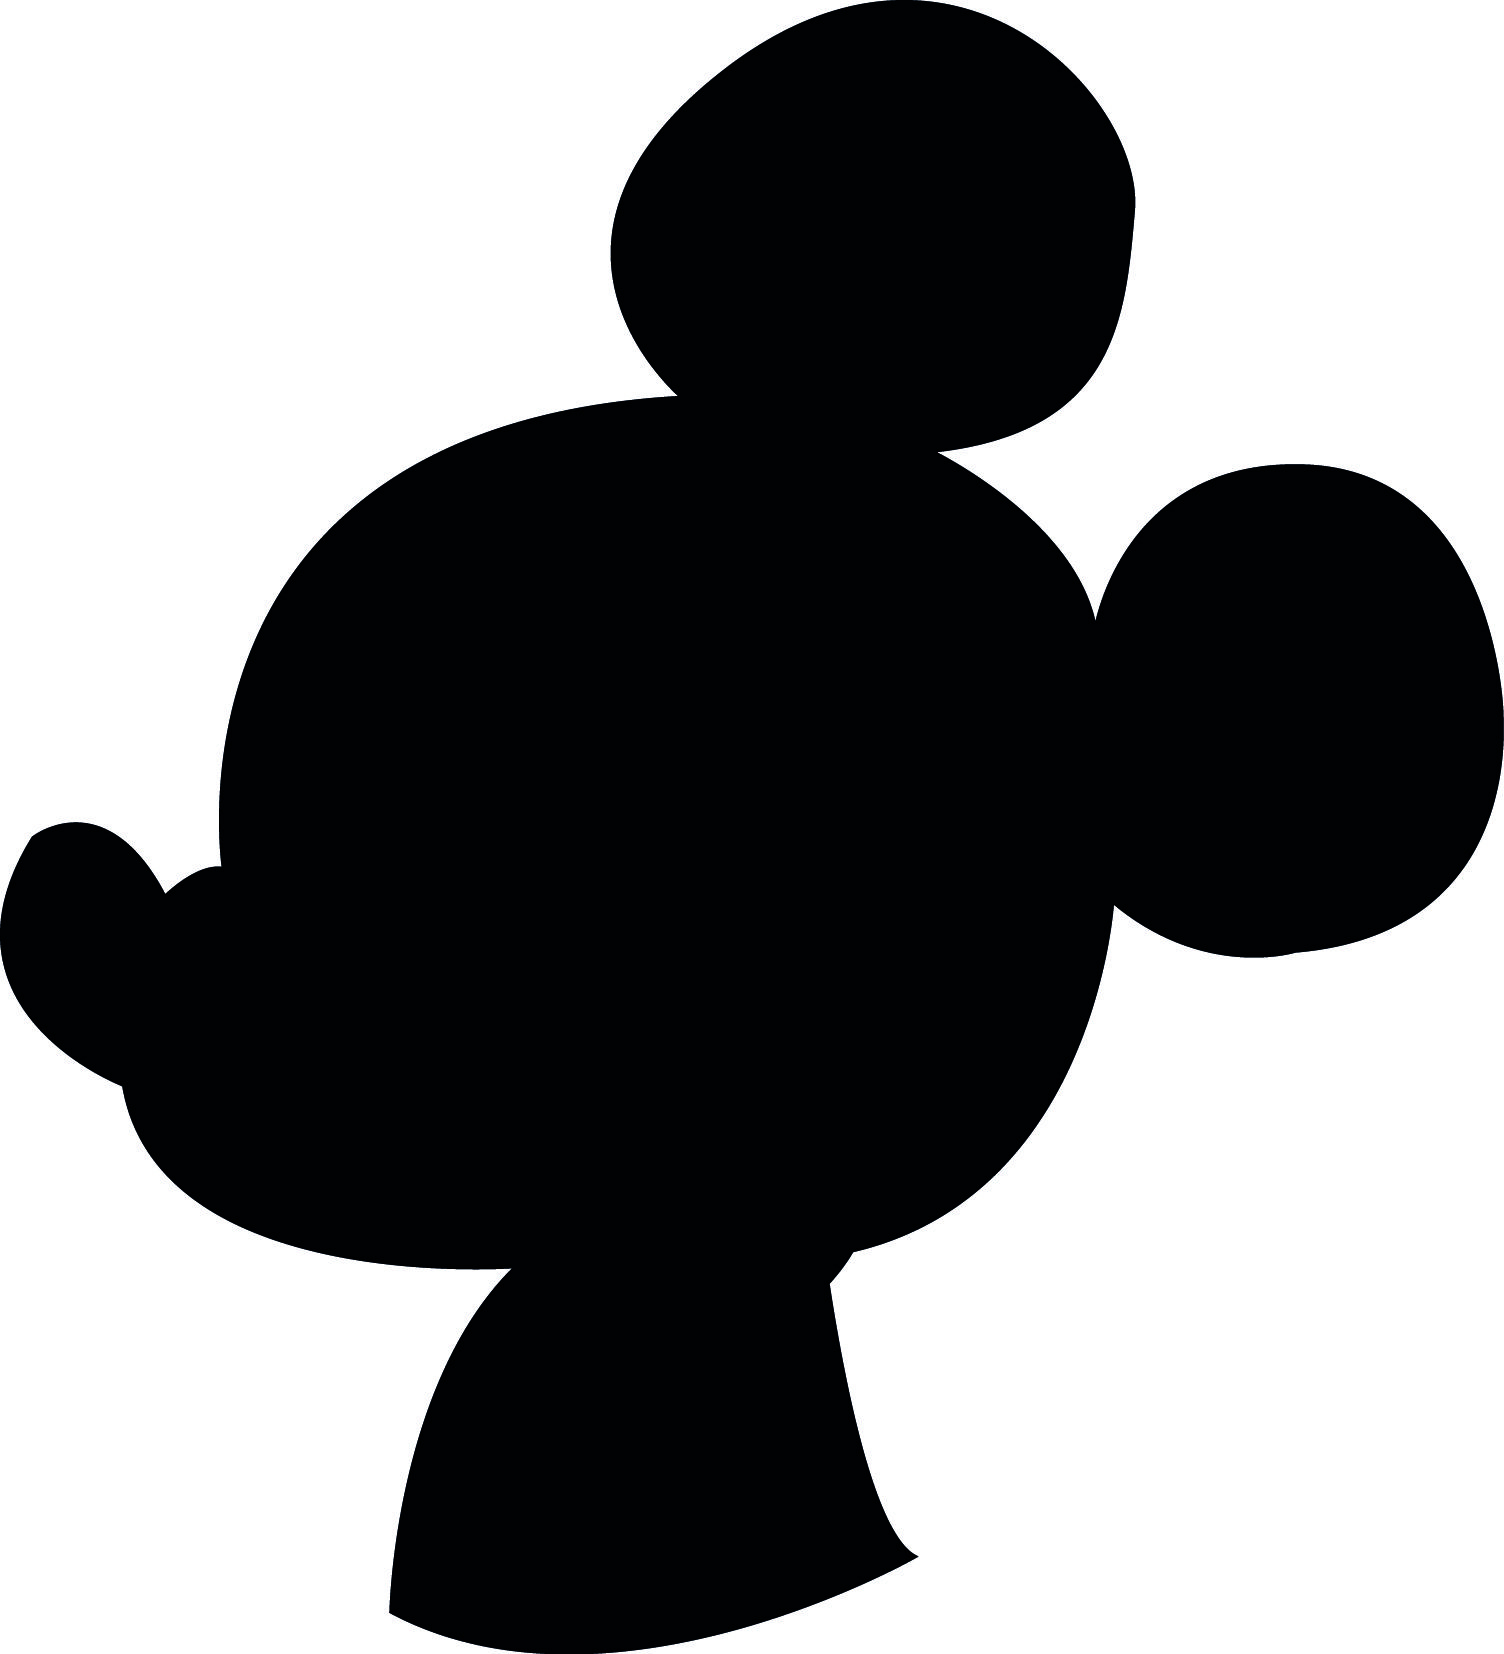 1504x1654 Downloadable Disney Mickey, Donald And Goofy Silhouettes